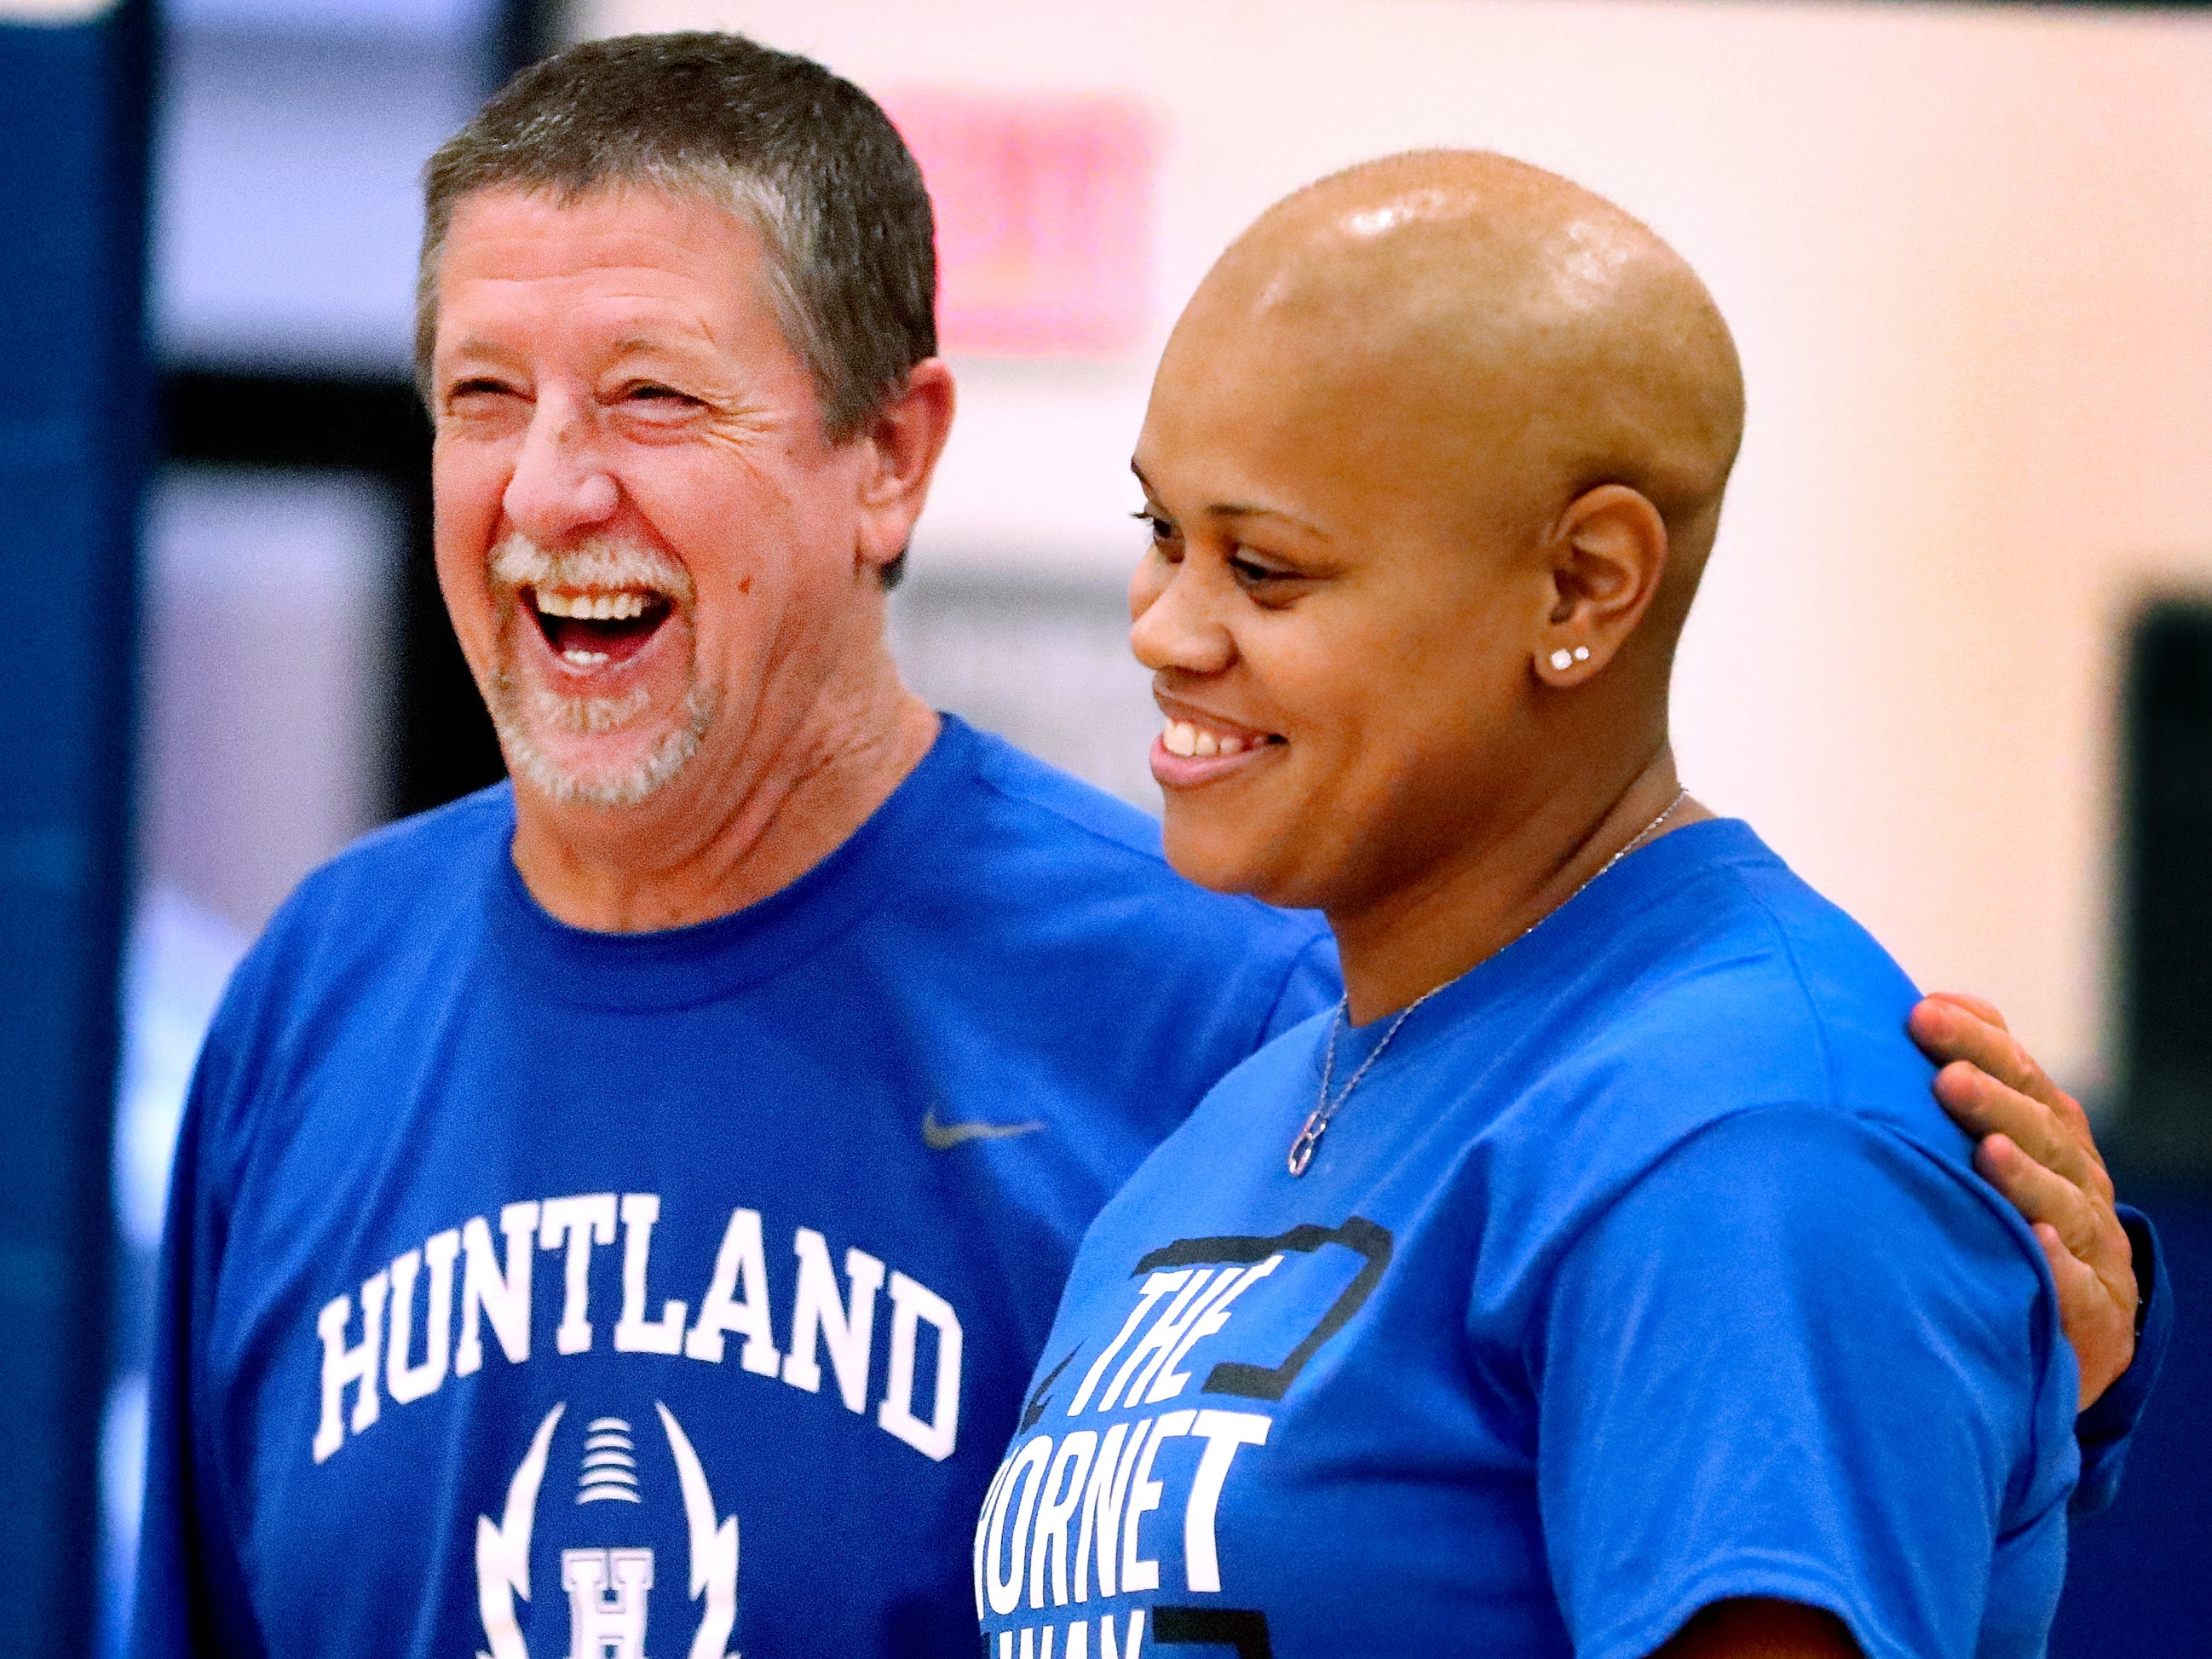 Bob Robertson the Athletic Director and Football Coach at Huntland School talks with Coach Tia Stovall, the girls middle school basketball coach, who has been battling breast cancer, during practice on Tuesday, Nov. 13, 2018.